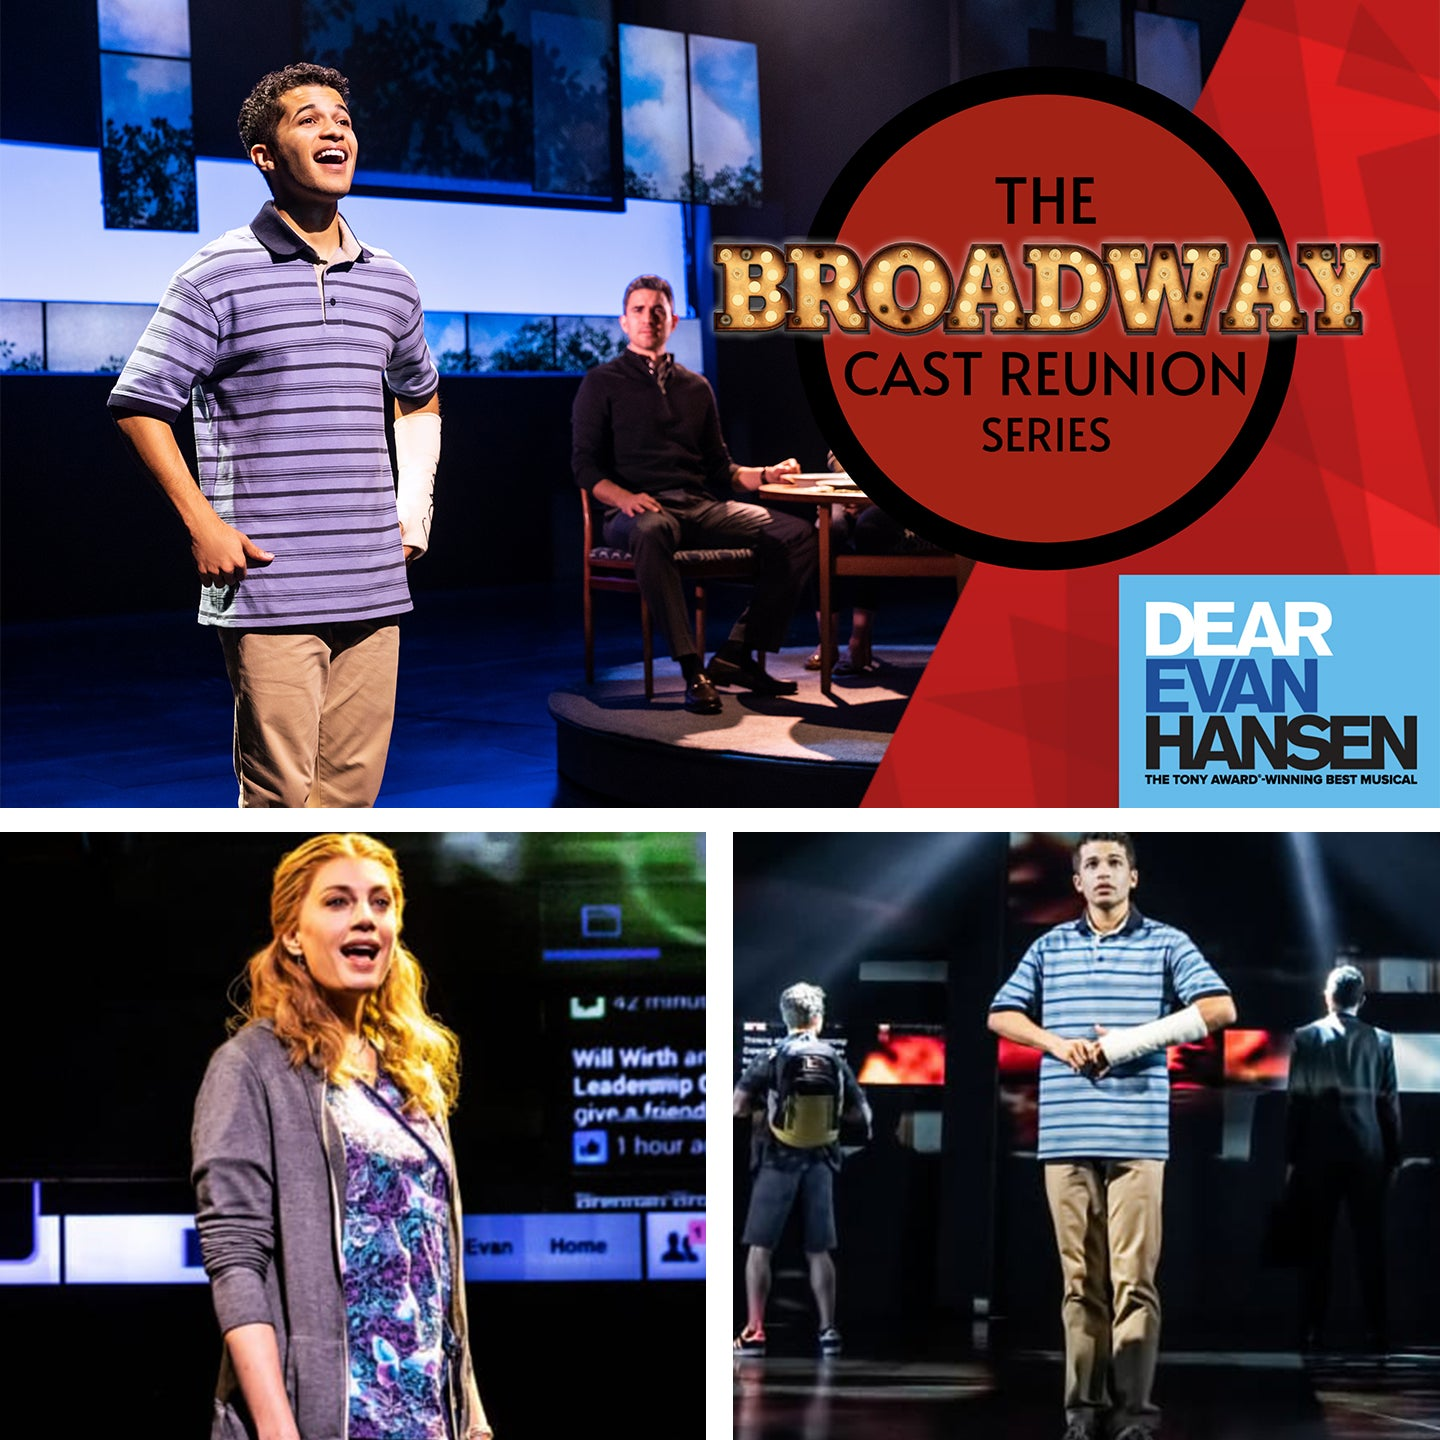 The Broadway Cast Reunion Series: